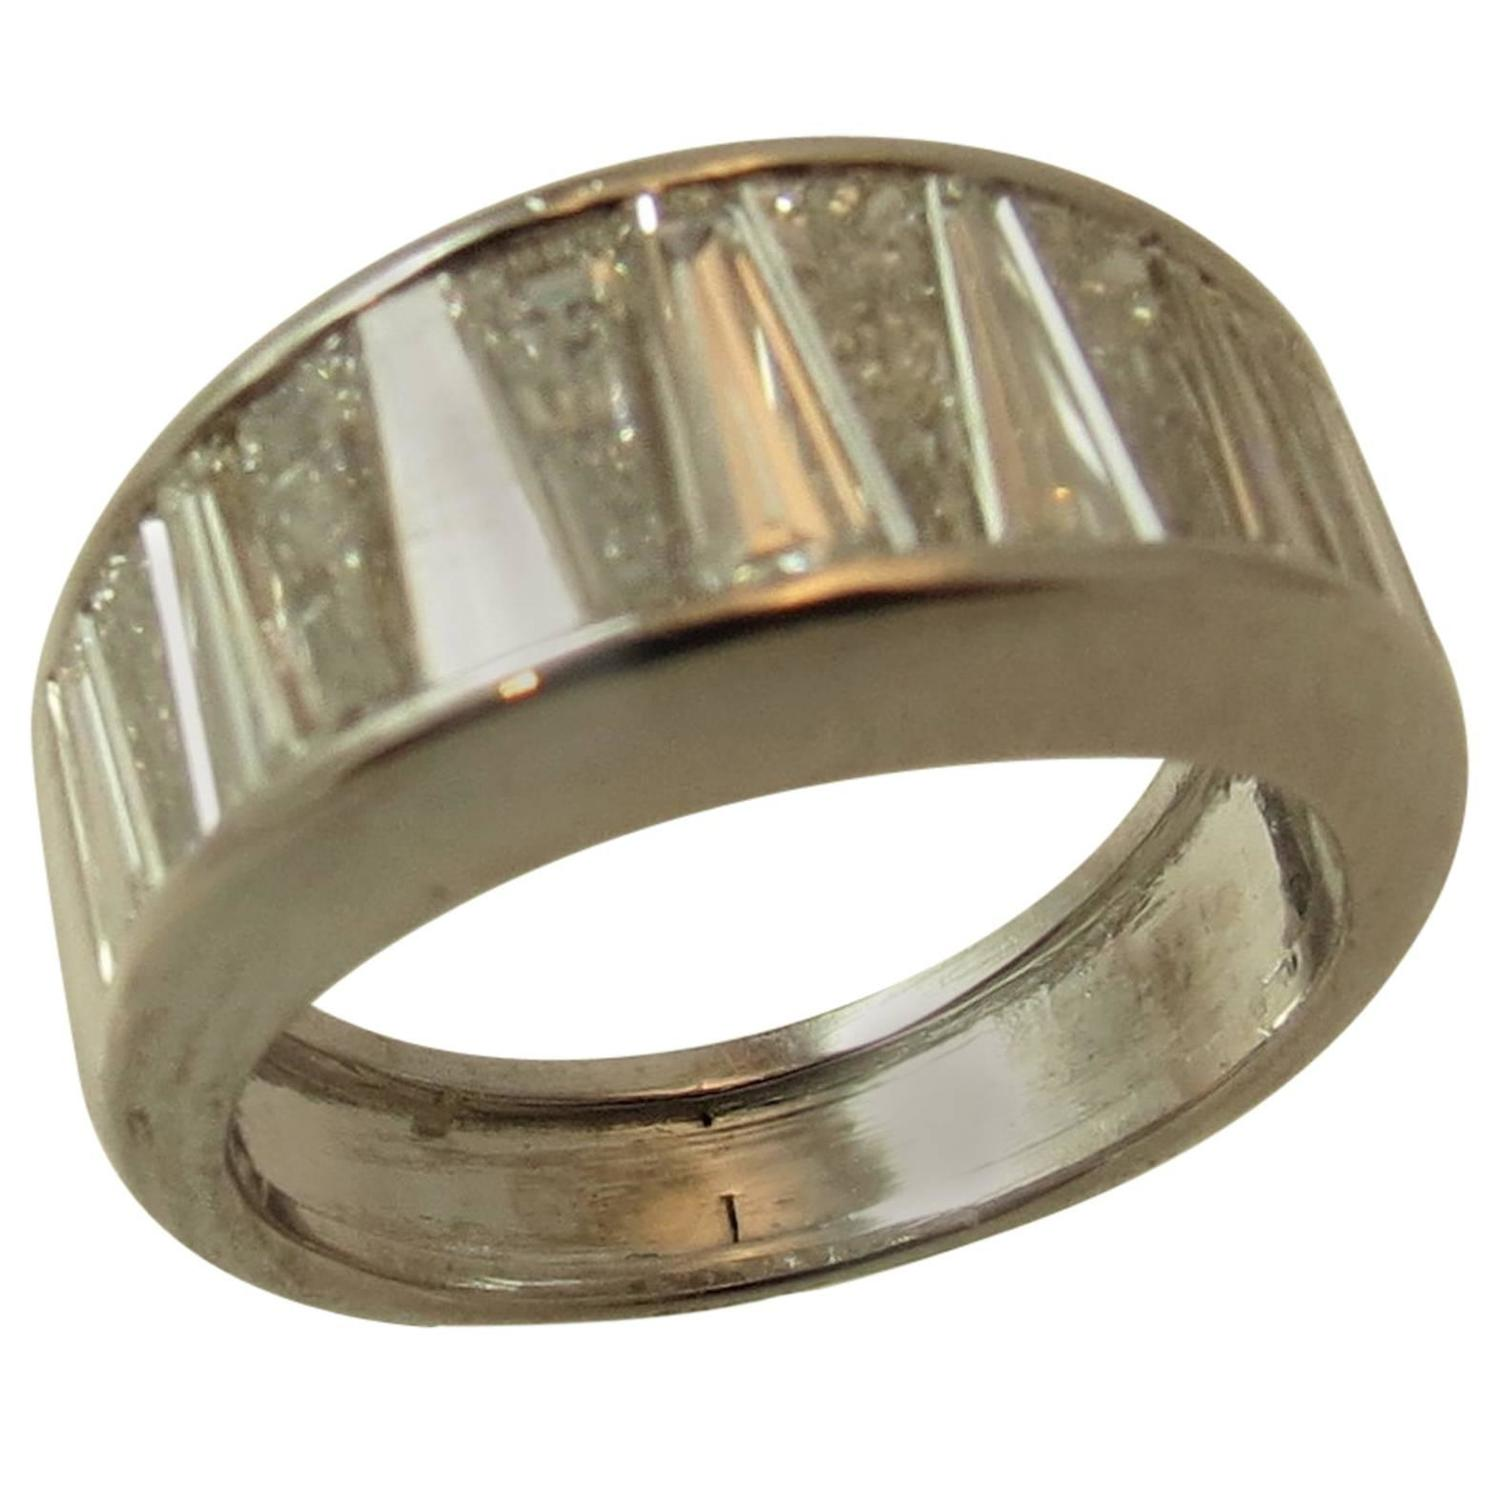 sophisticated make when diamonds earth rings beautiful designs look set brilliant deco or diamond bands for art news in platinum and sleek a ring wedding engagement back era to harkening tapered the baguette band